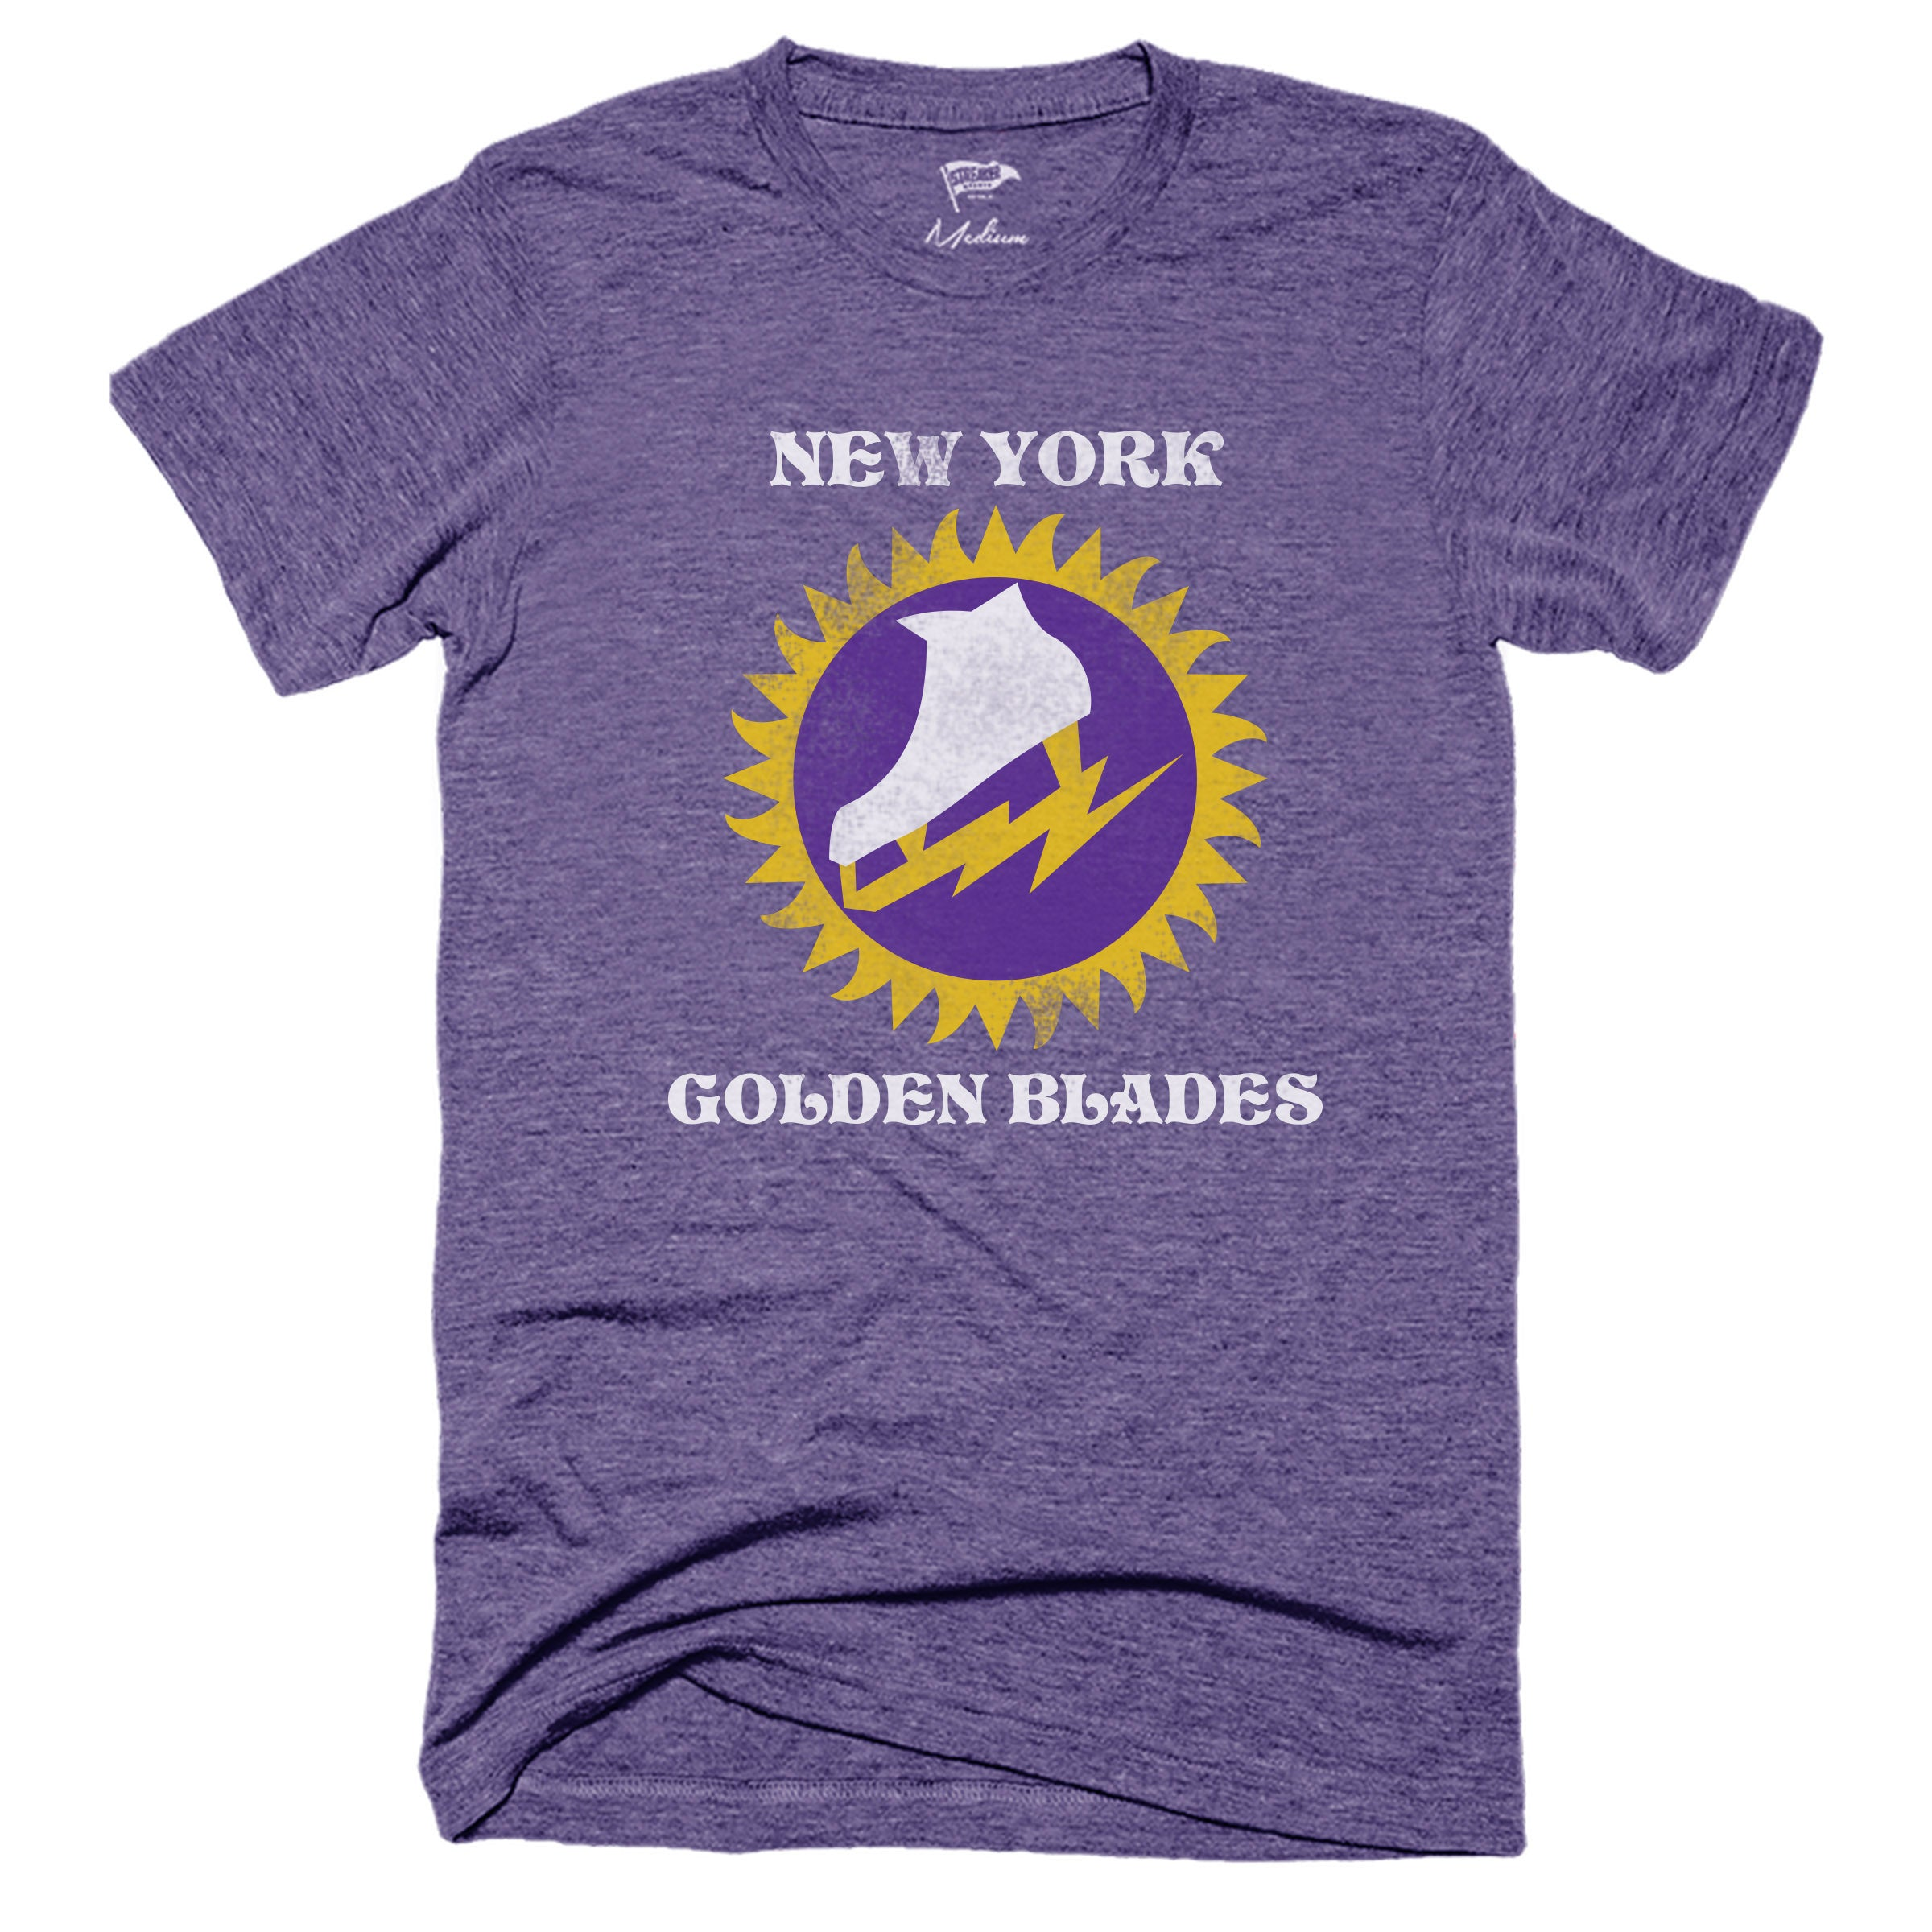 1973 New York Golden Blades Tee